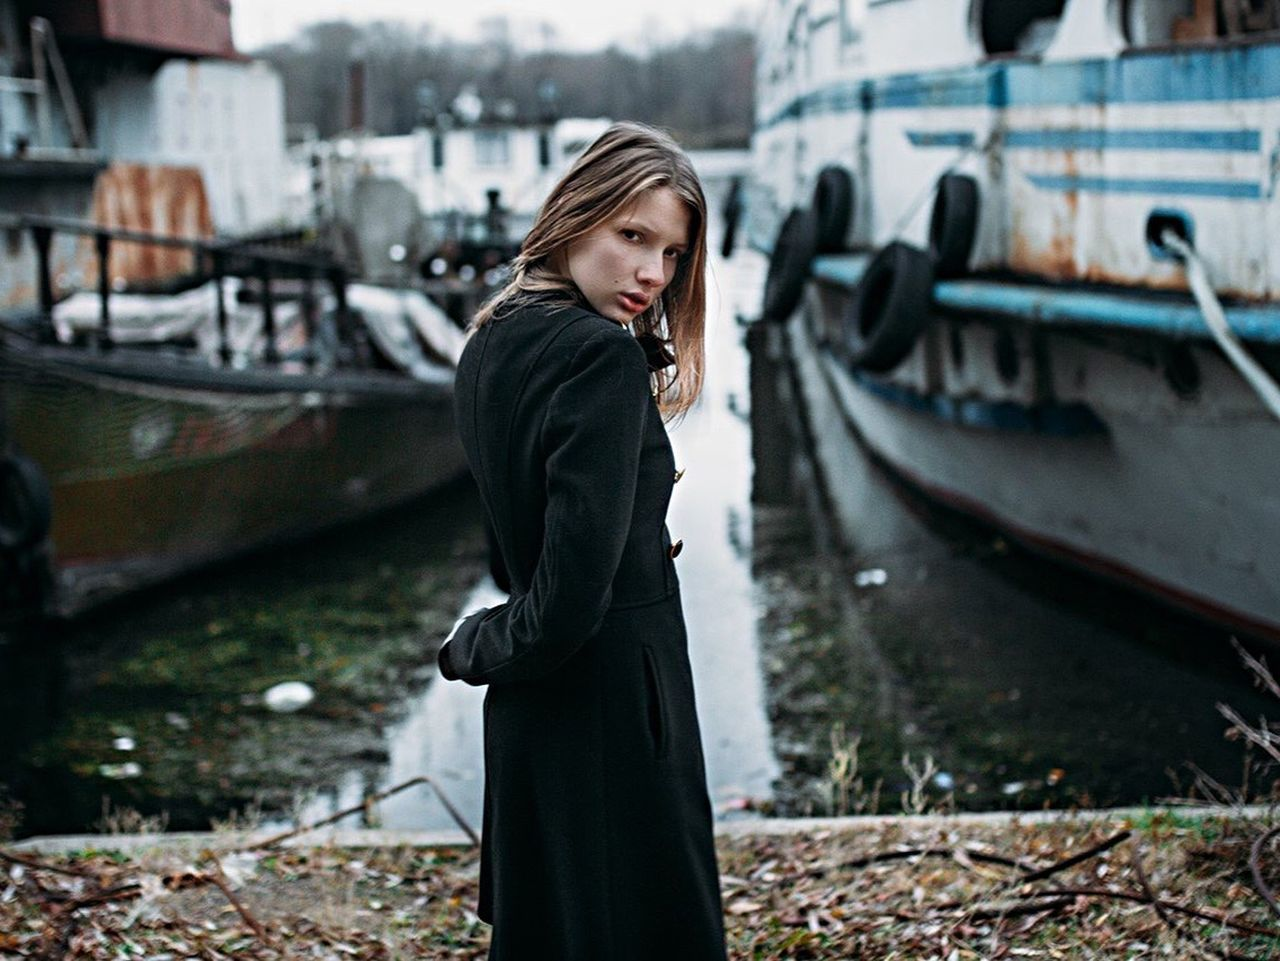 transportation, mode of transport, one person, young adult, outdoors, real people, nautical vessel, young women, side view, focus on foreground, day, built structure, building exterior, architecture